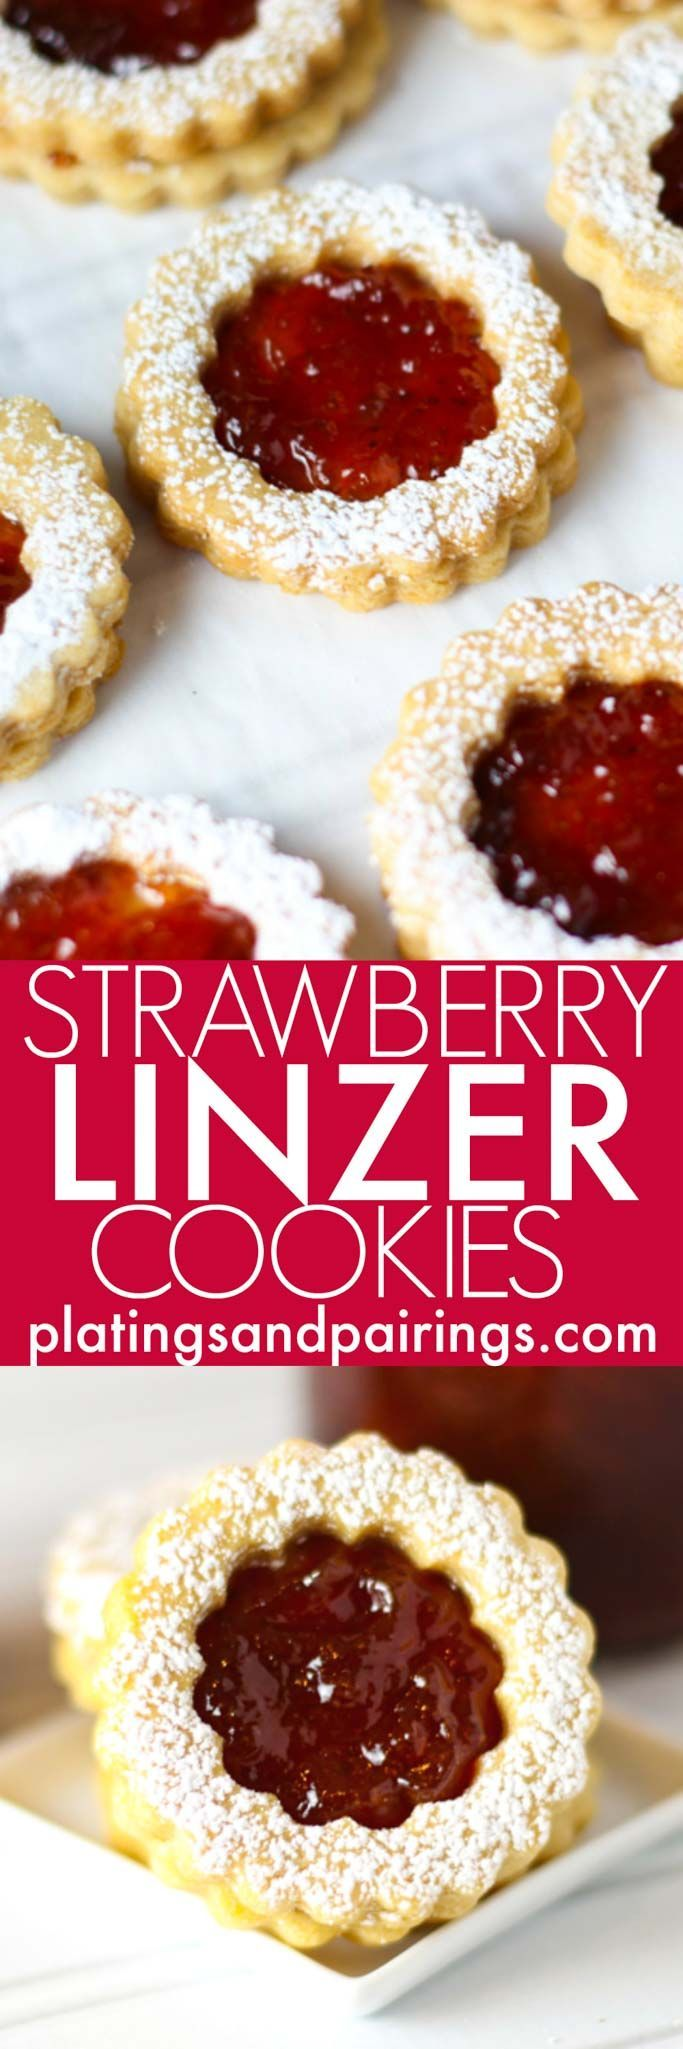 These Linzer Cookies with Strawberry Jam are a delightful, sweet treat that's perfect for holidays like Christmas and Valentine's Day!   platingsandpairings.com